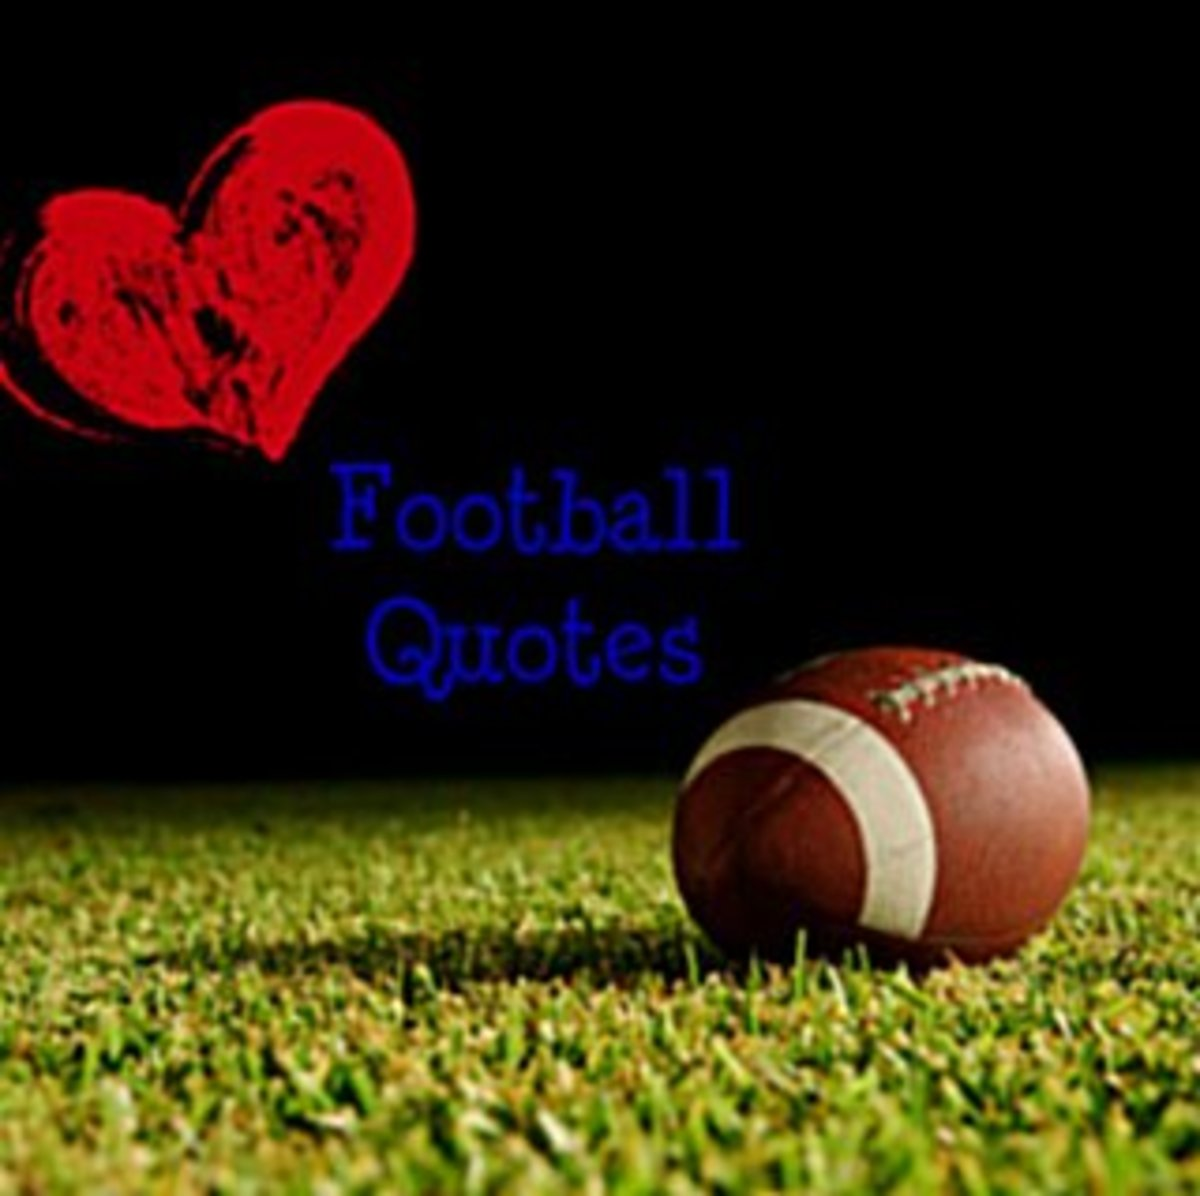 Inspirational Football Quotes from Hubpages